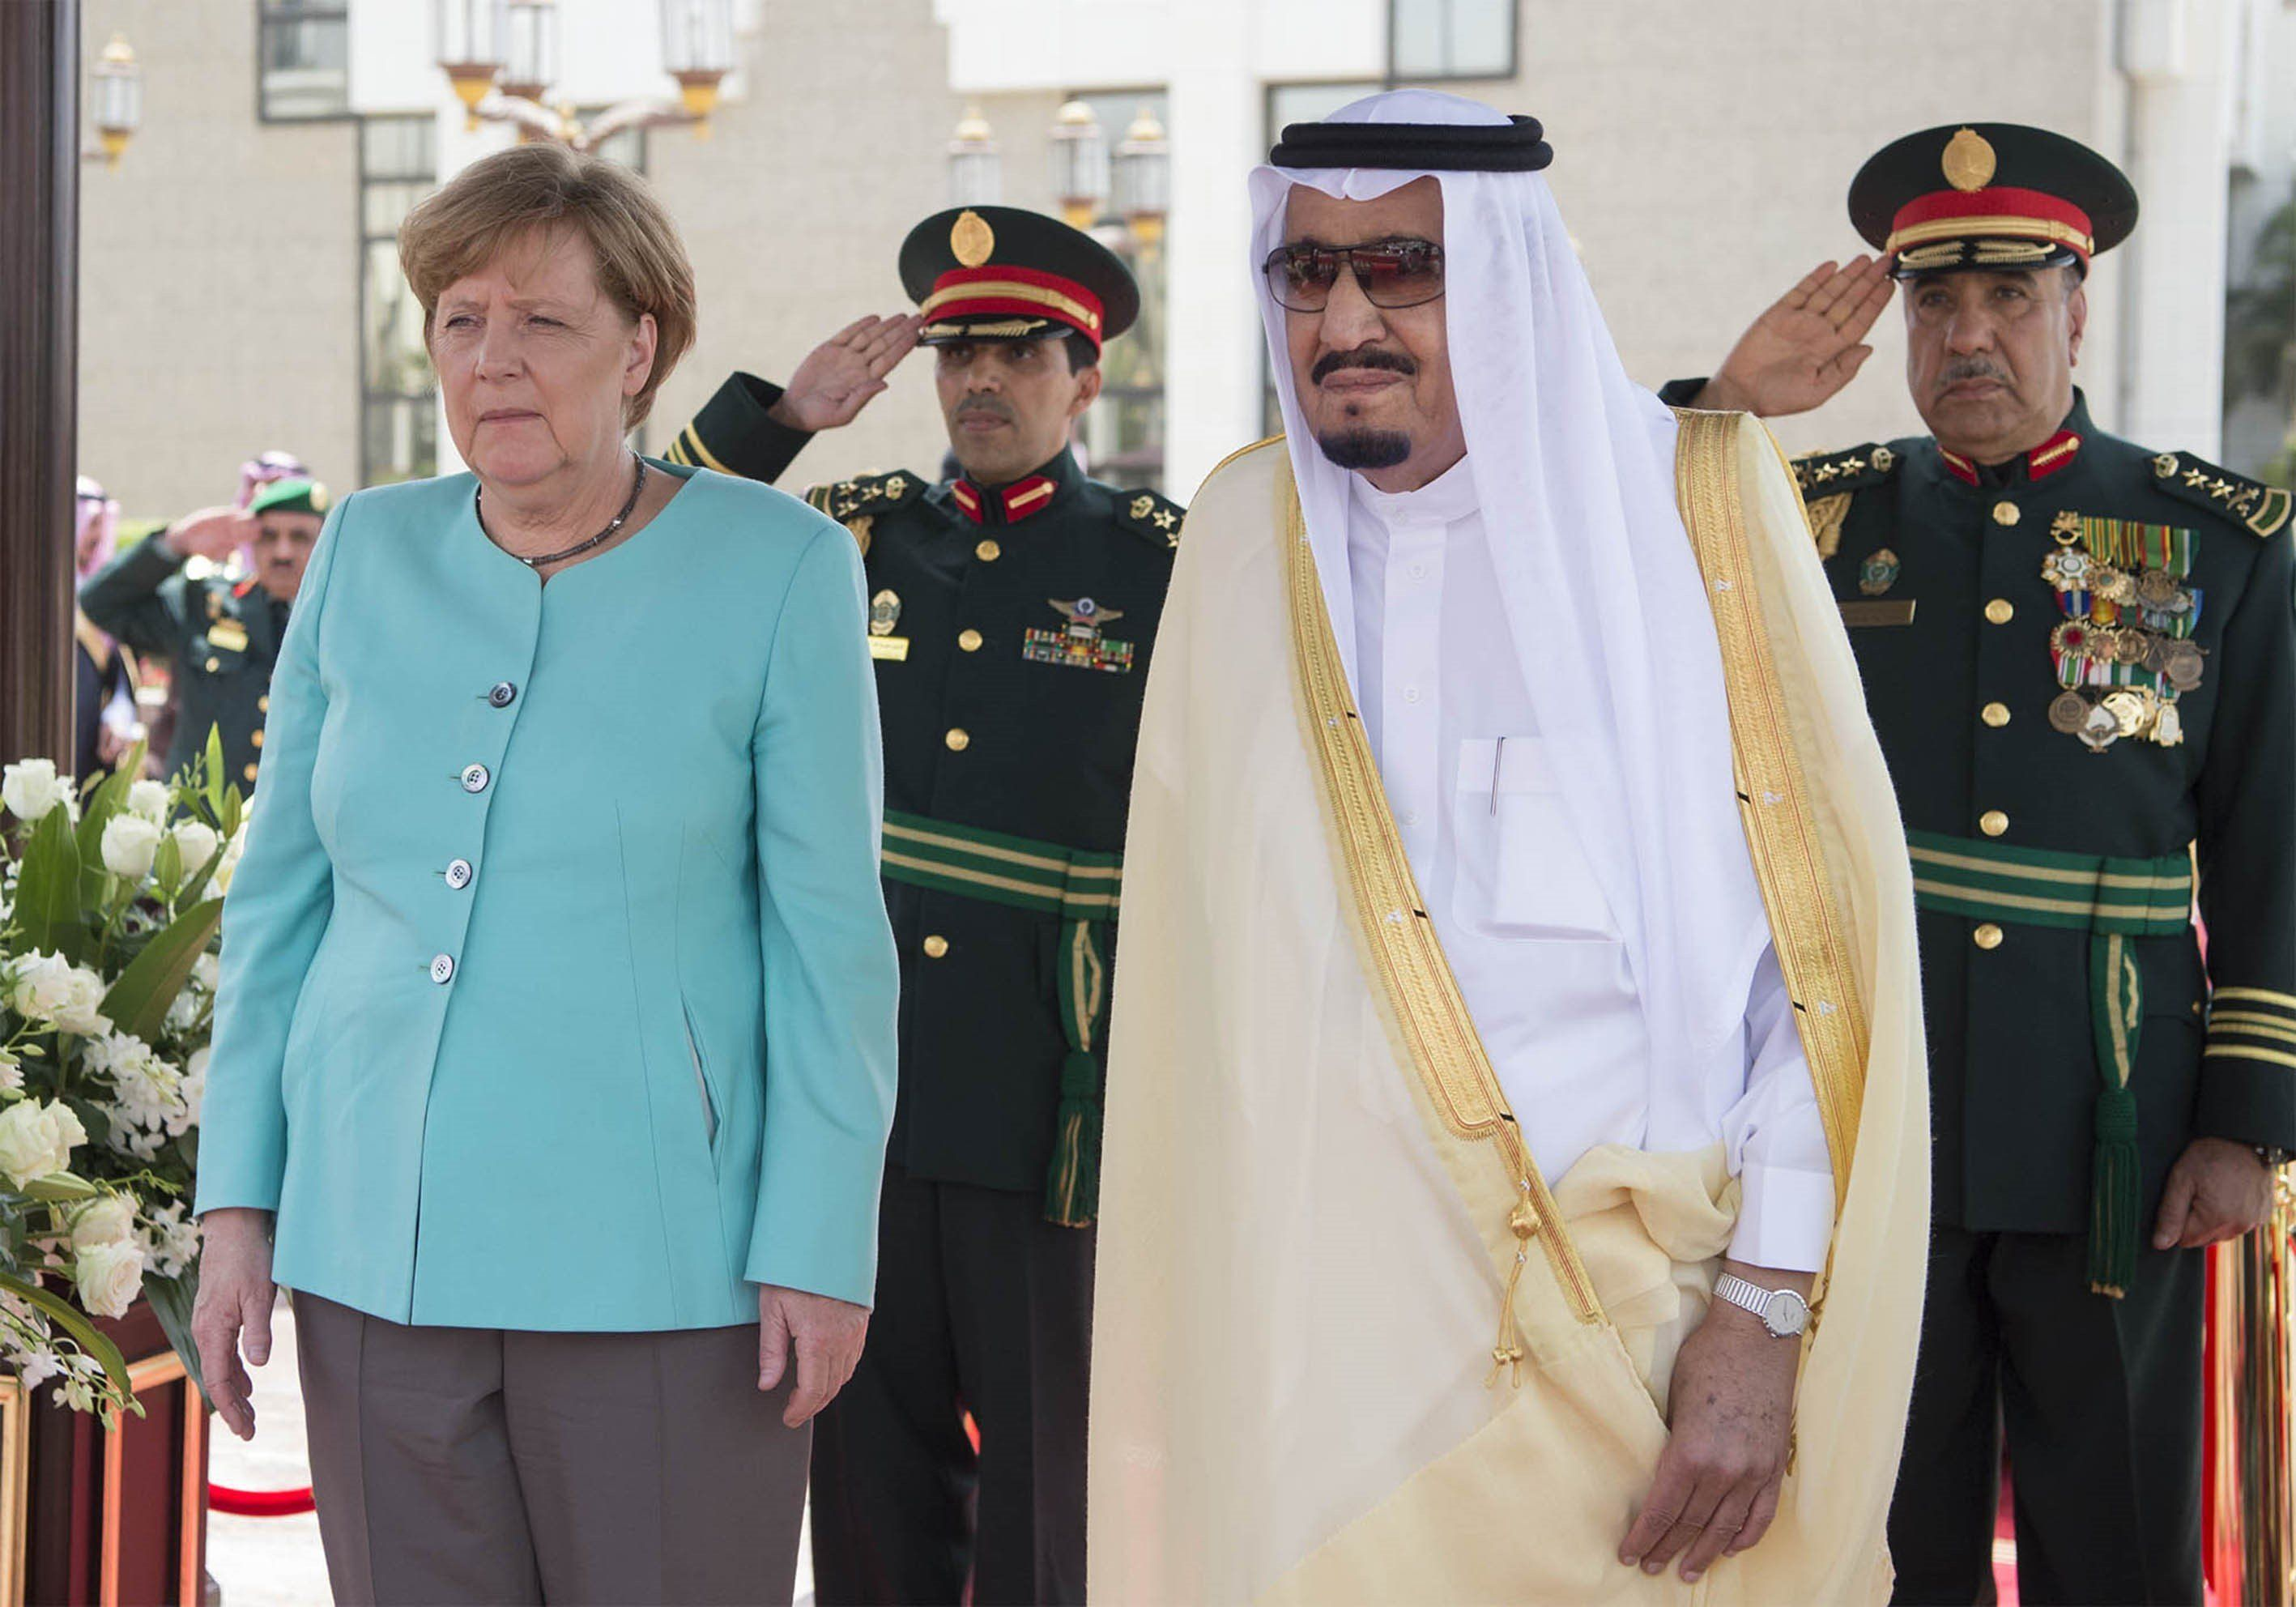 Angela Merkel Chooses Not To Wear Headscarf In Saudi